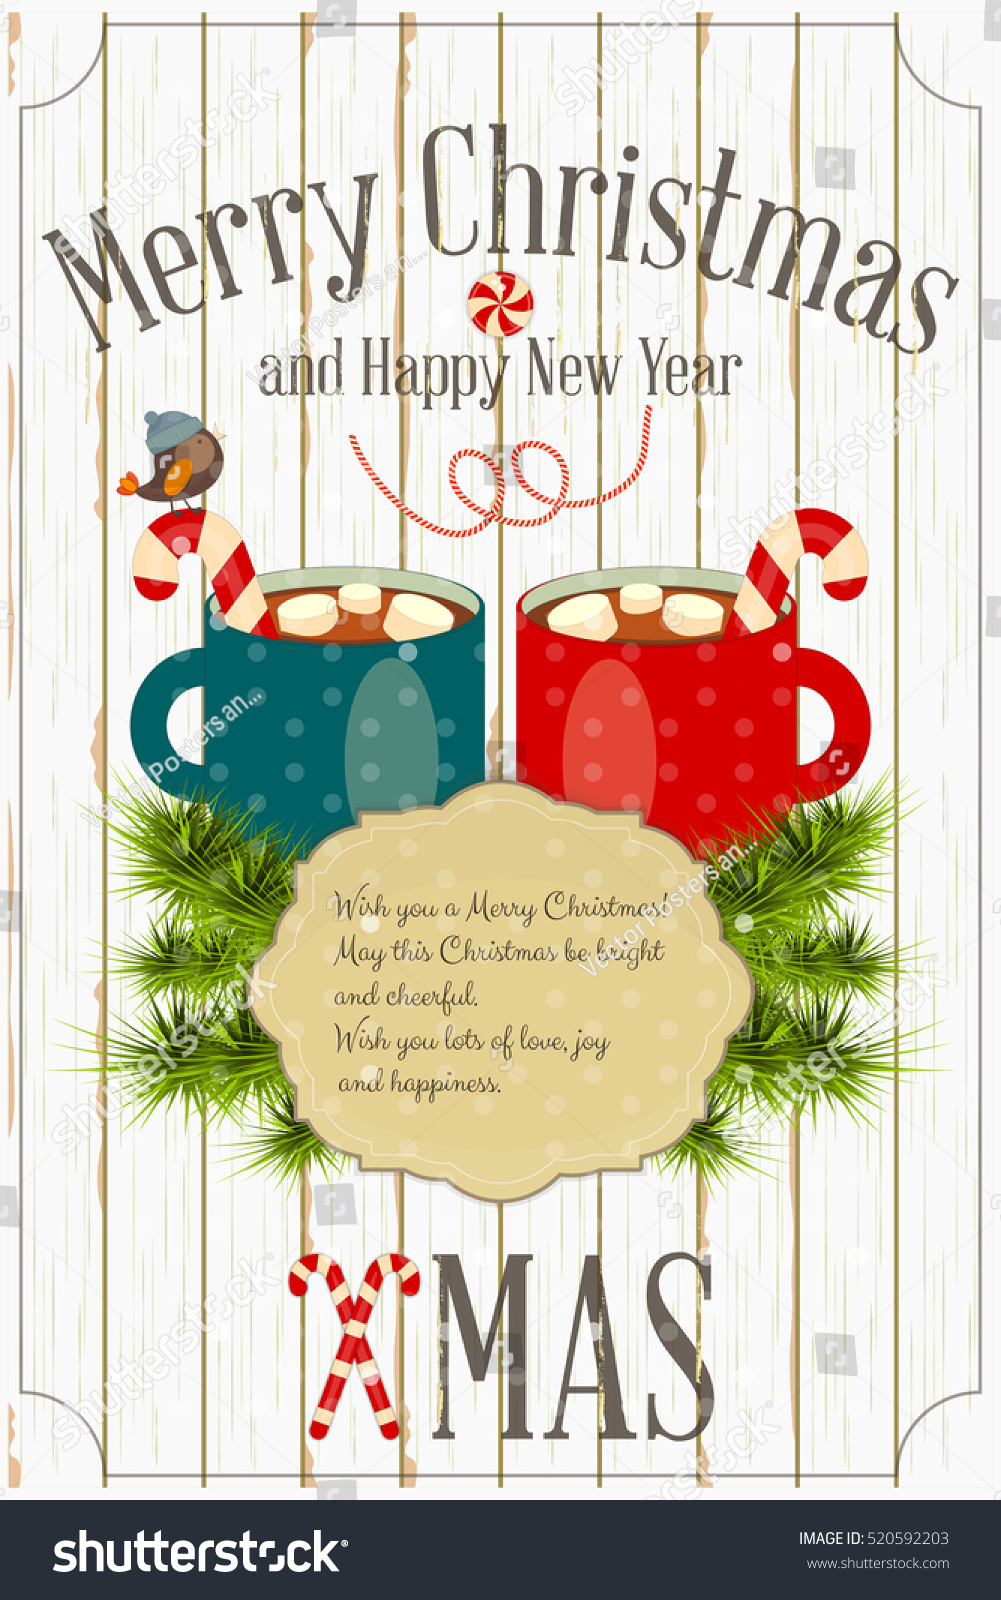 Merry Christmas New Year Card Two Stock Vector Royalty Free